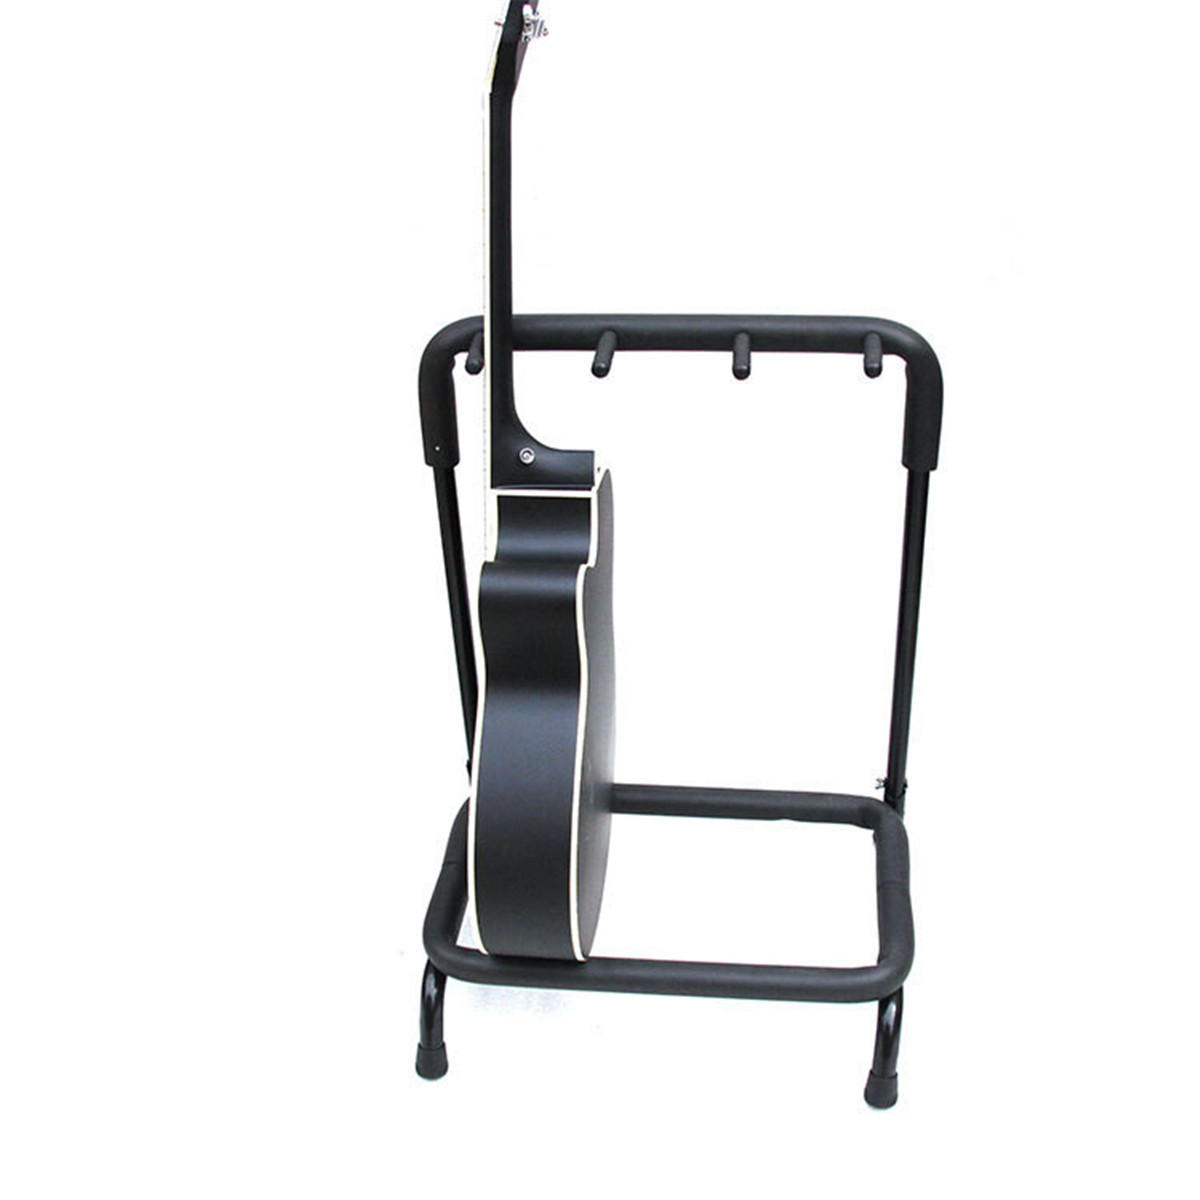 Foldable Stainless Steel Guitar Stand Bass Holder